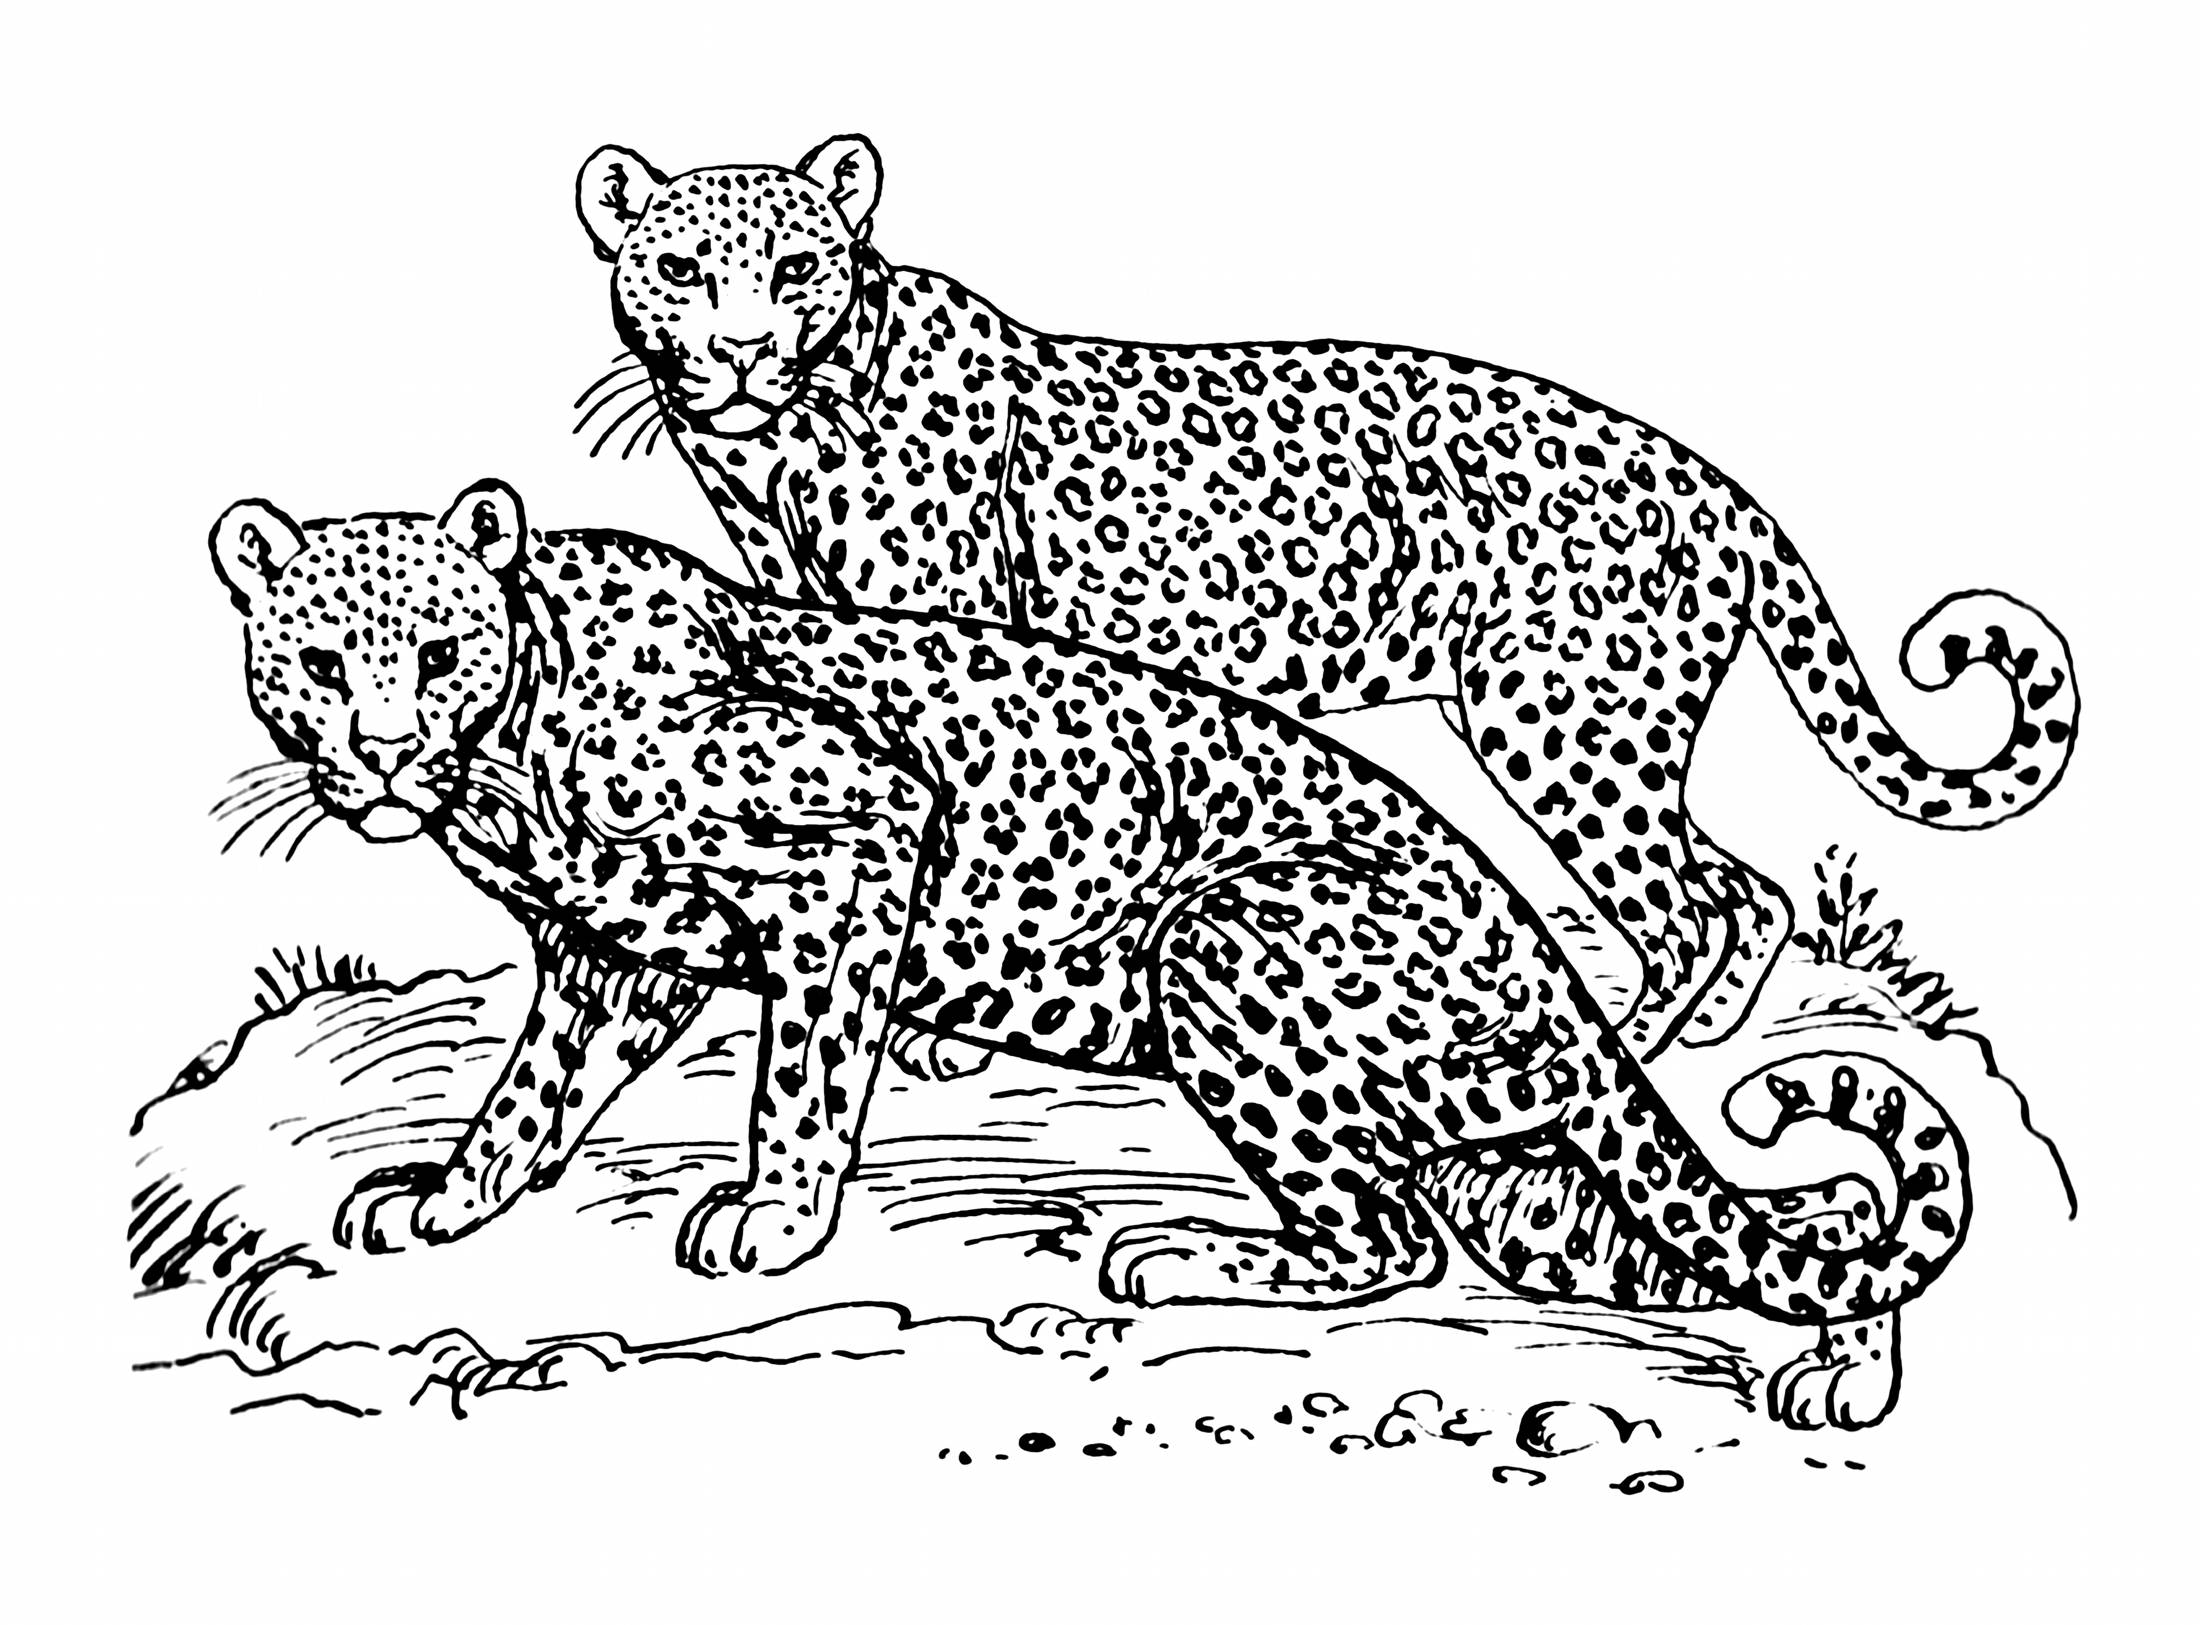 Jaguar Coloring Pages For Adults Coloring Pages Jaguar Coloring Pages